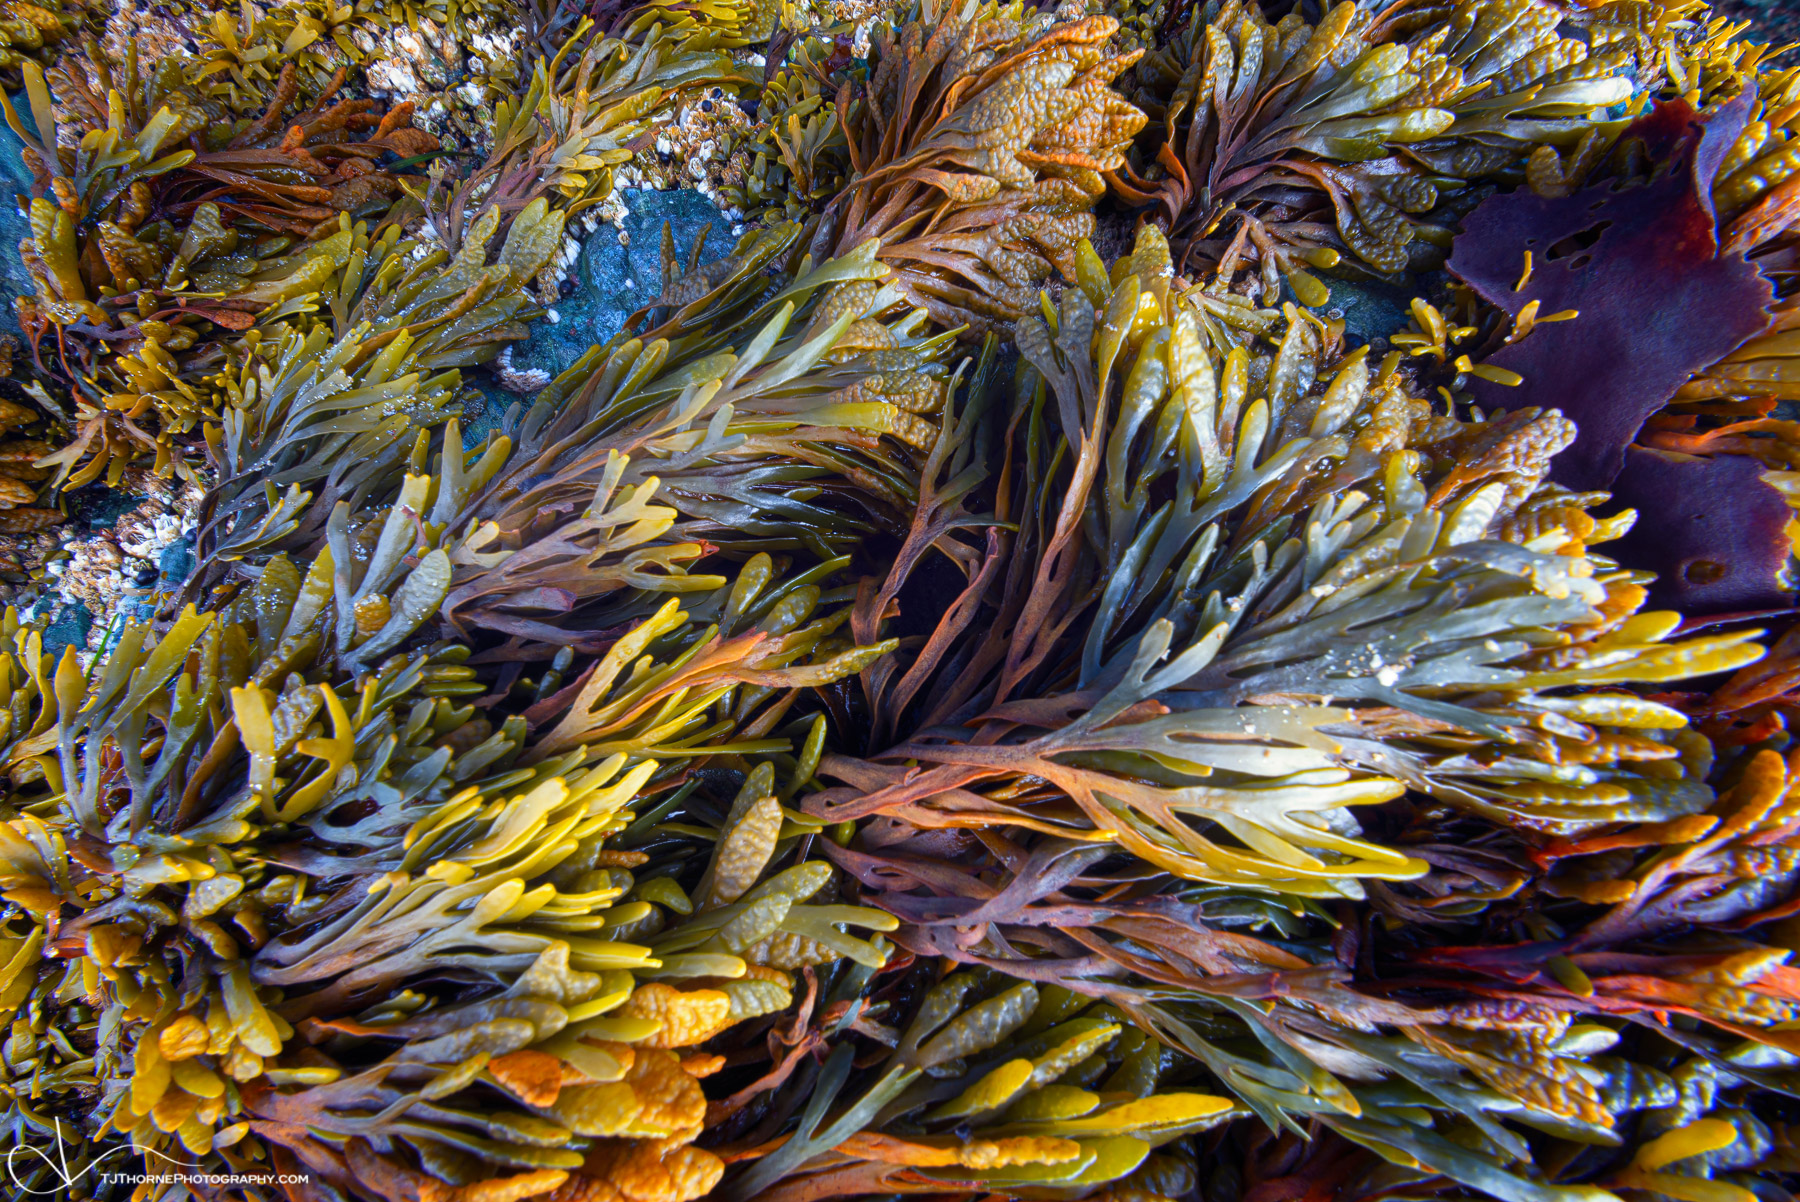 rockweed, oregon, coastal, plant, seaweed, swirl, photo